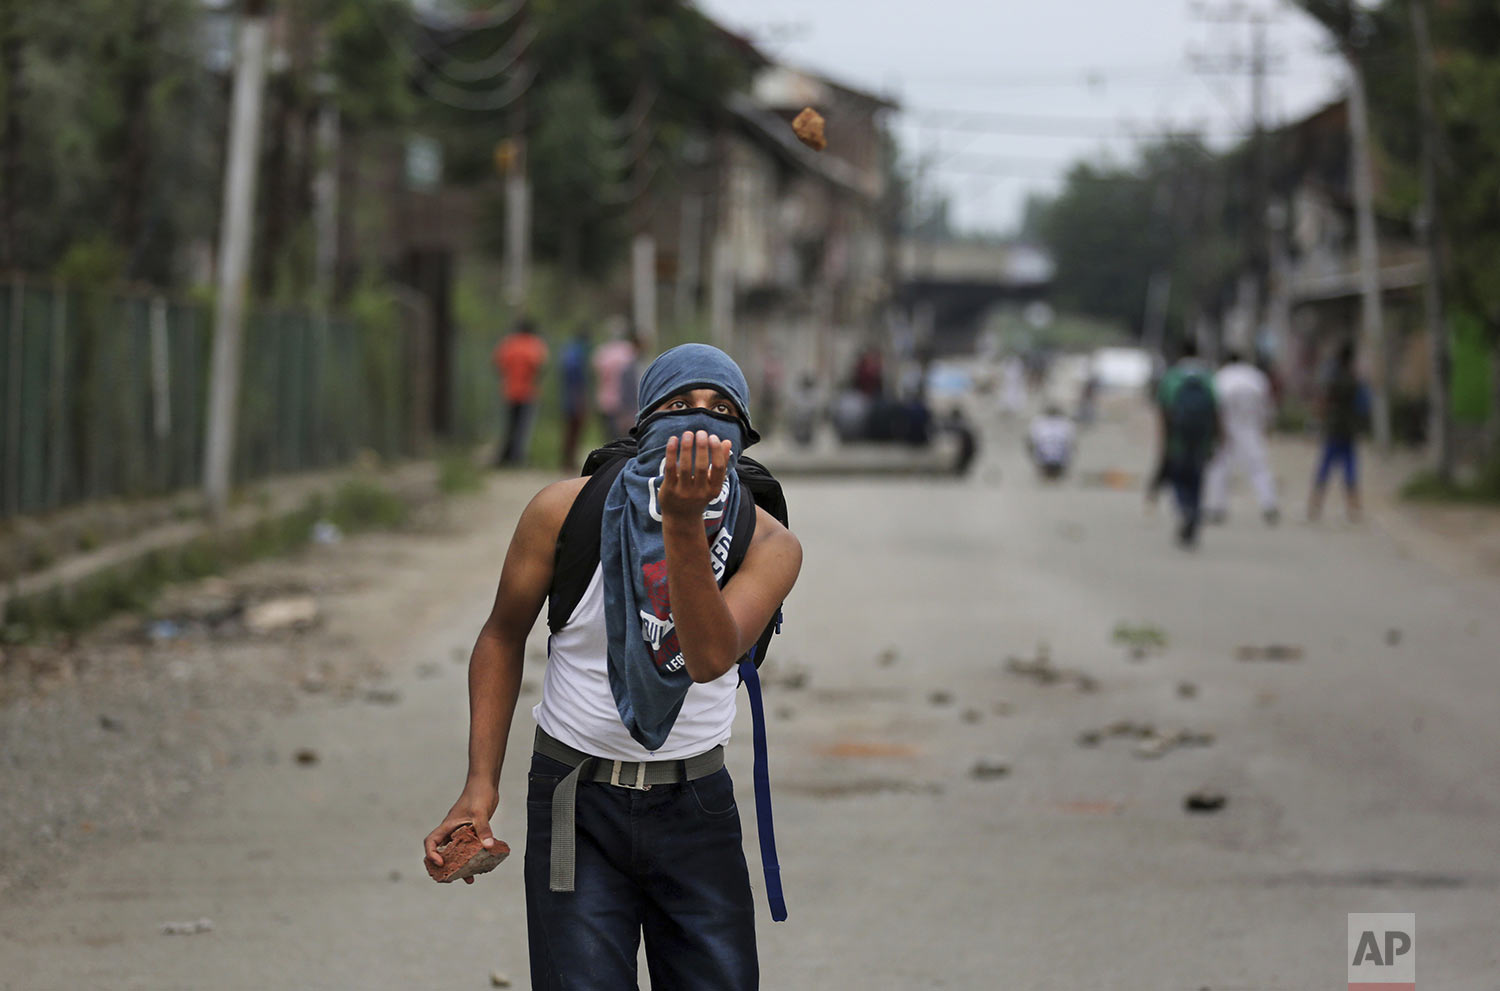 A Kashmiri prepares to catch a stone during an anti-India protest Srinagar, India, Friday, Aug. 9, 2019 (AP Photo/Altaf Qadri)